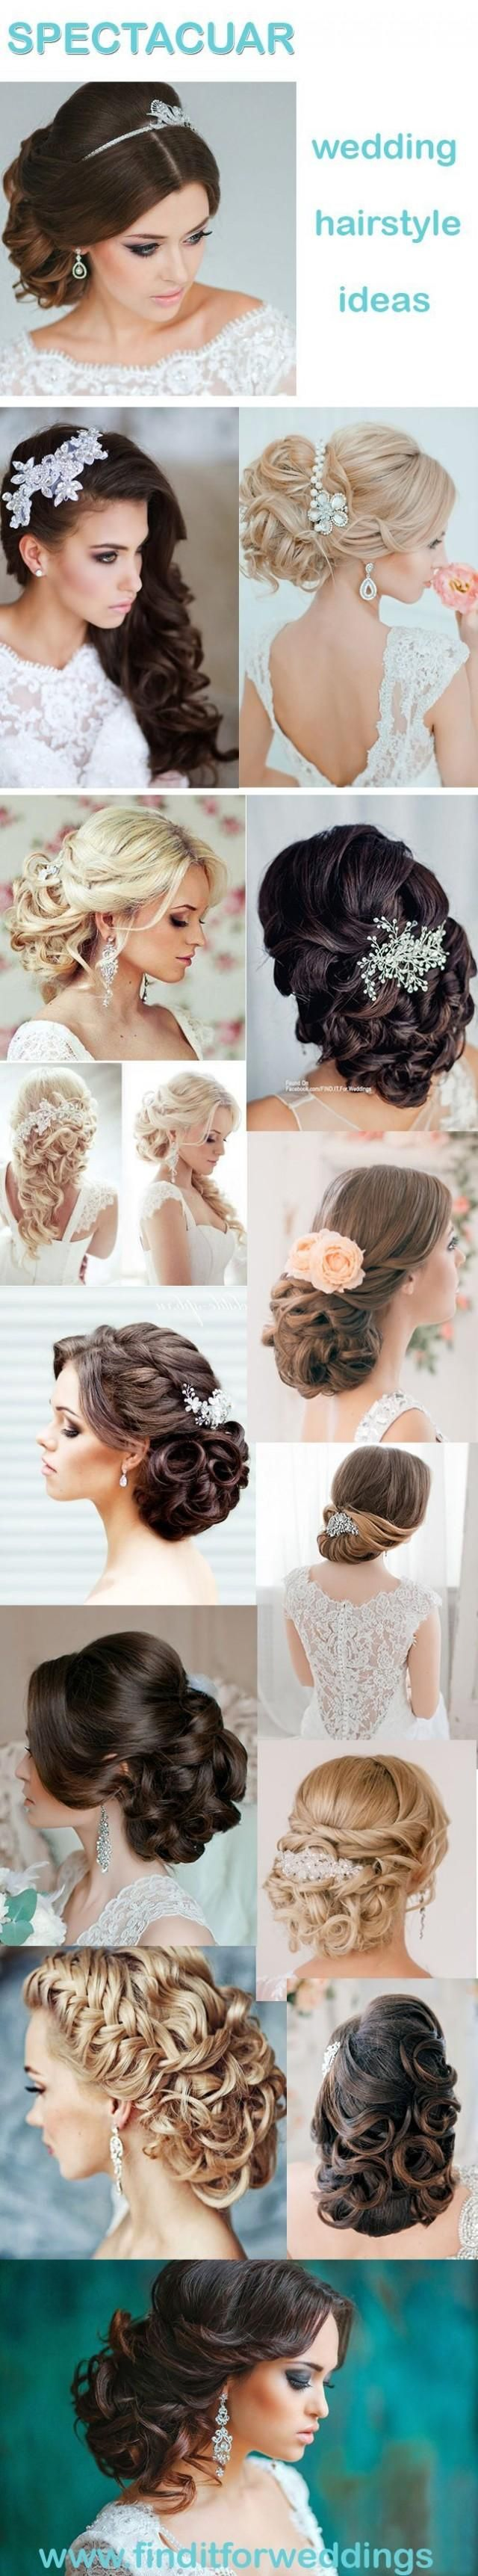 Weddbook is a content discovery engine mostly specialized on wedding concept. You can collect images, videos or articles you discovered  organize them, add your own ideas to your collections and share with other people - wedding hairstyles inspiration